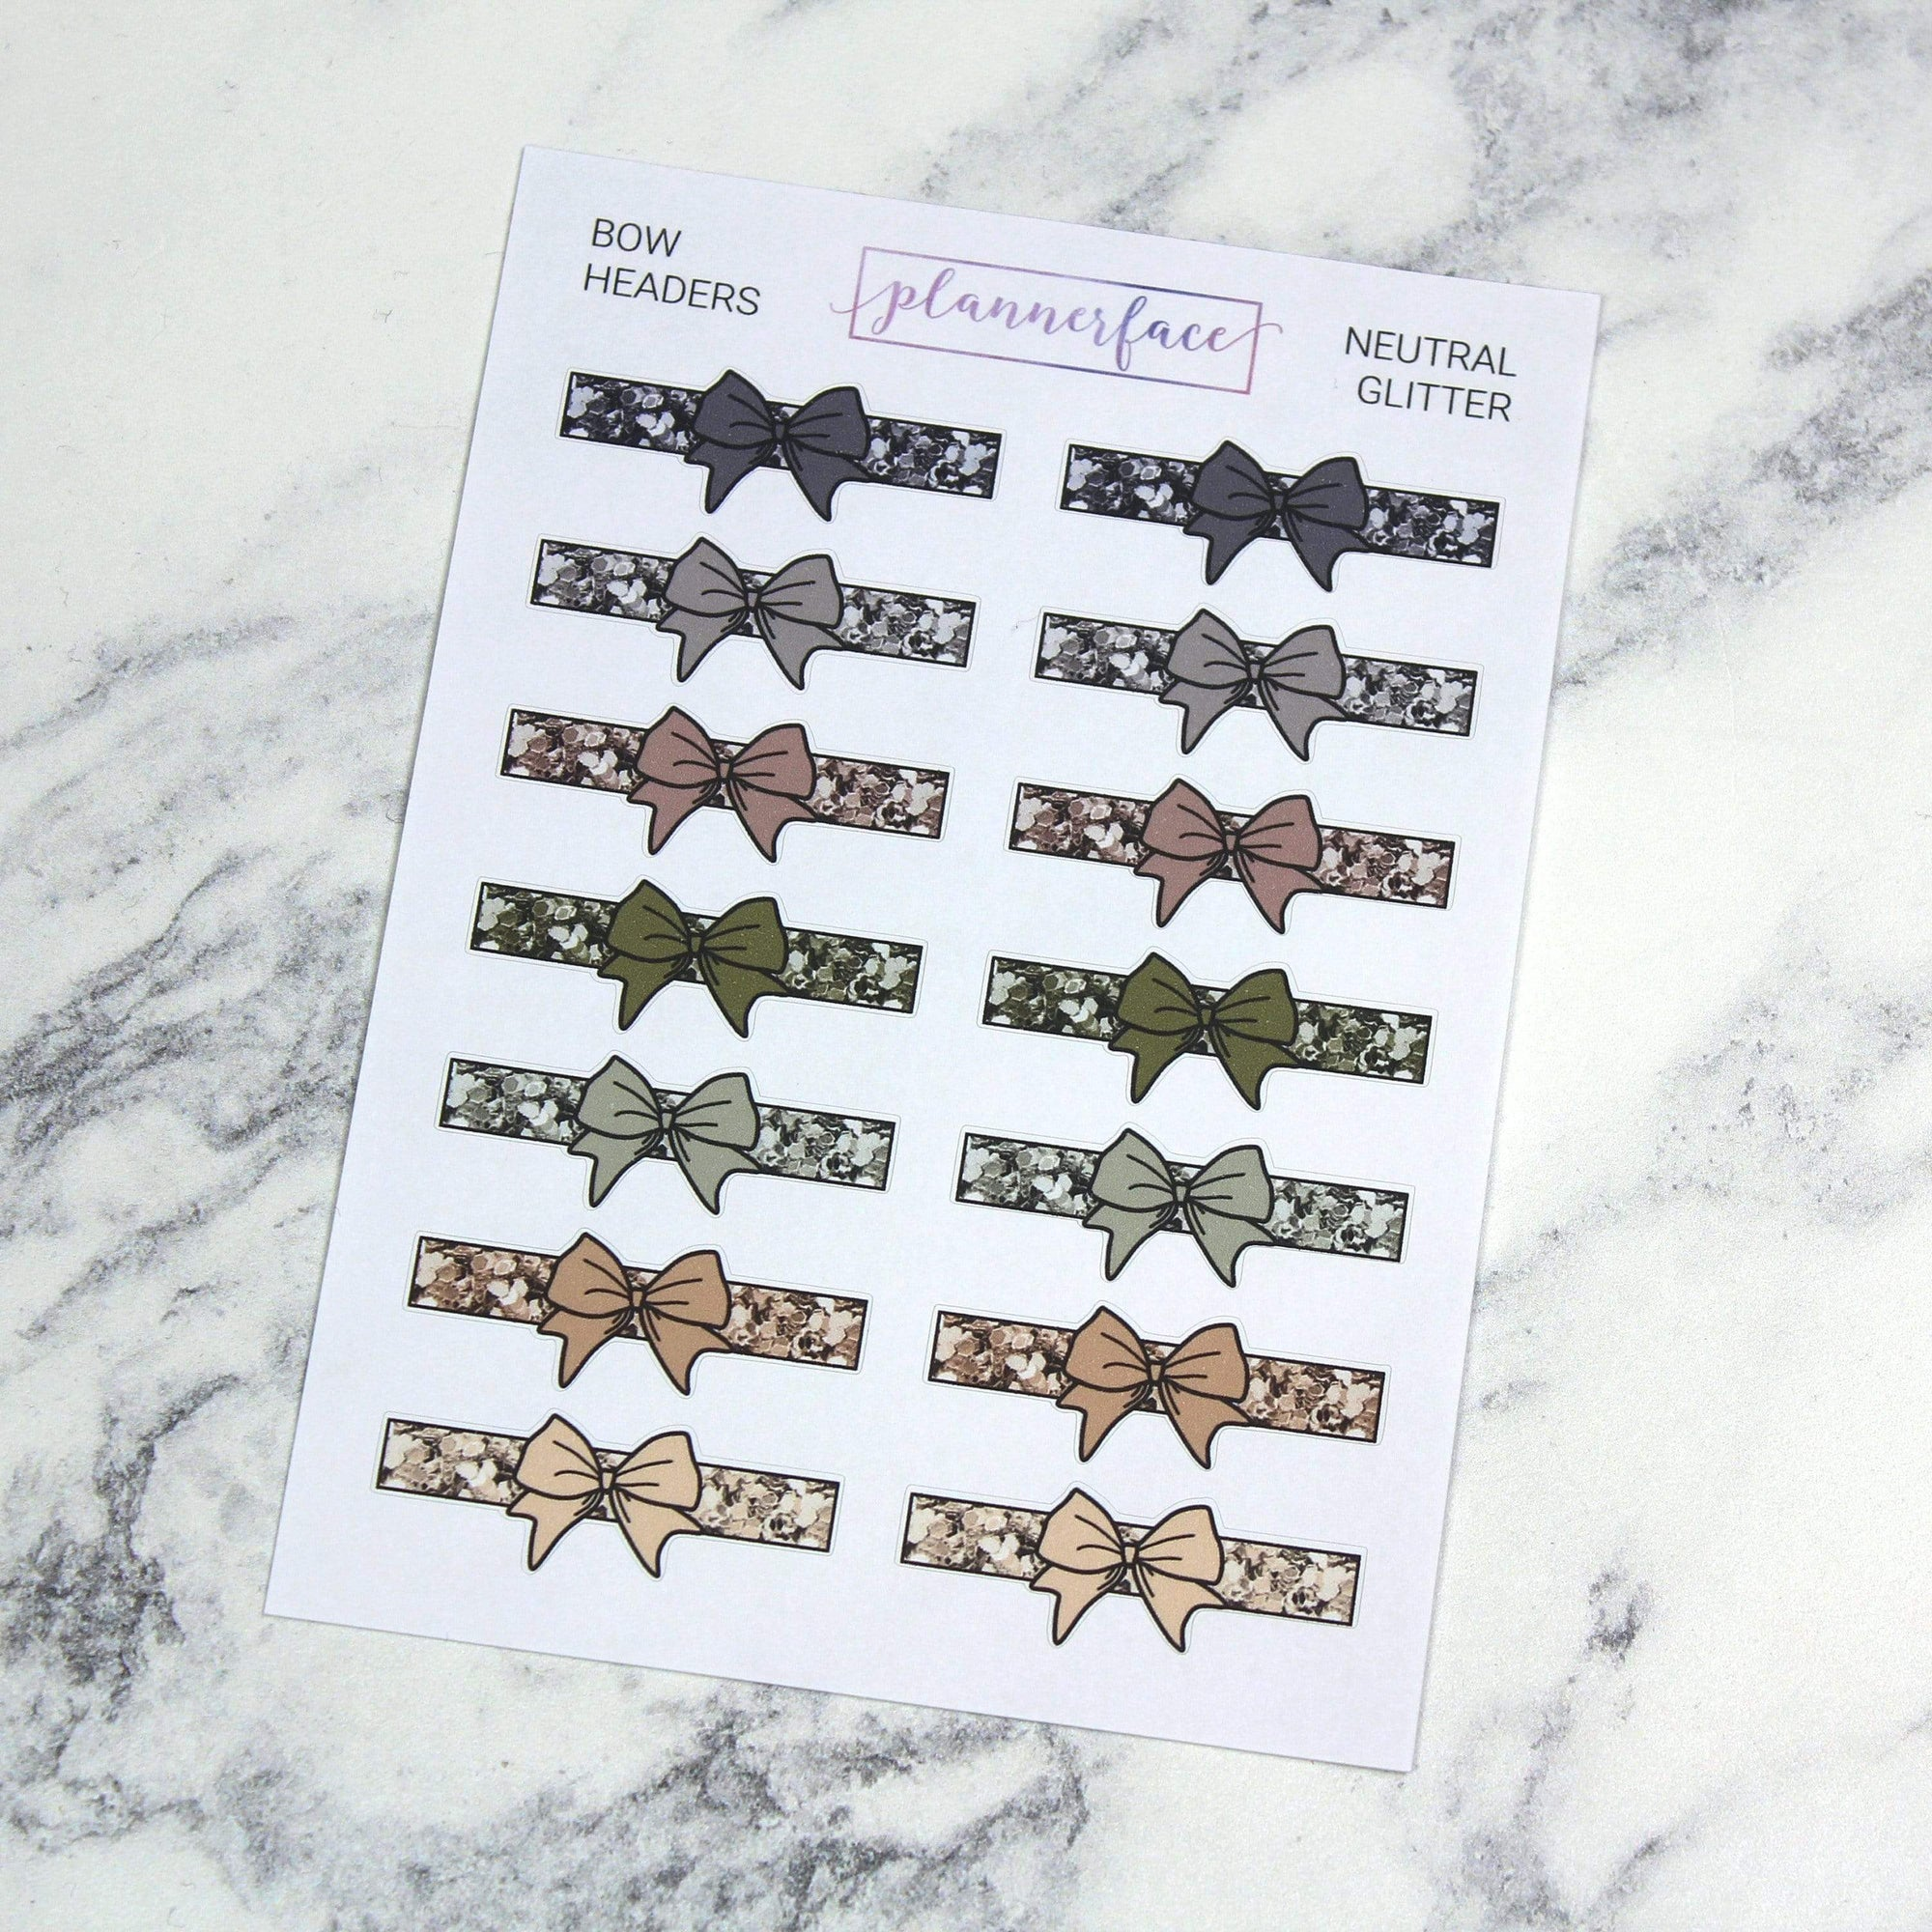 Plannerface Neutral Glitter Bow Headers Planner Stickers